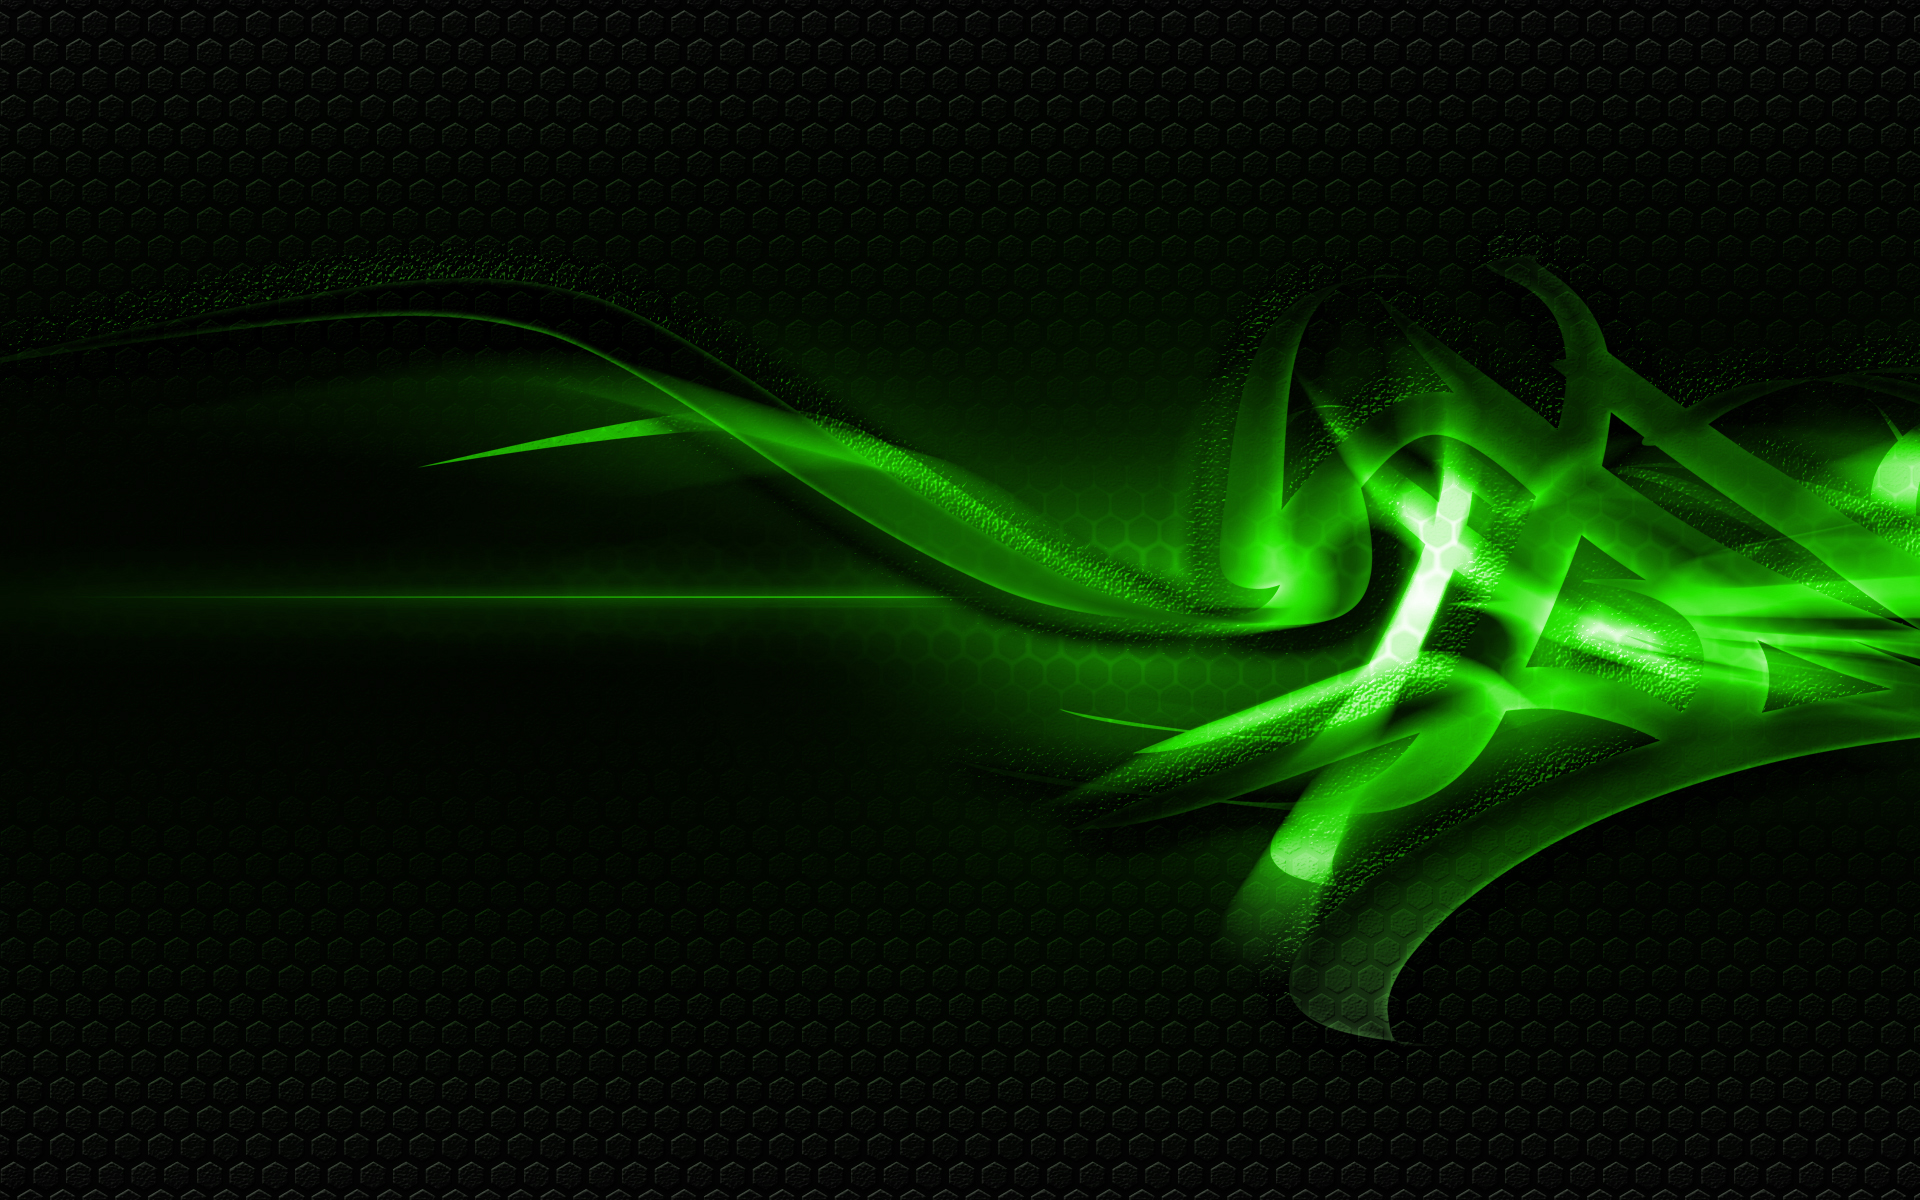 2012 Abstract Wallpapers All images are copyrighted by their 1920x1200